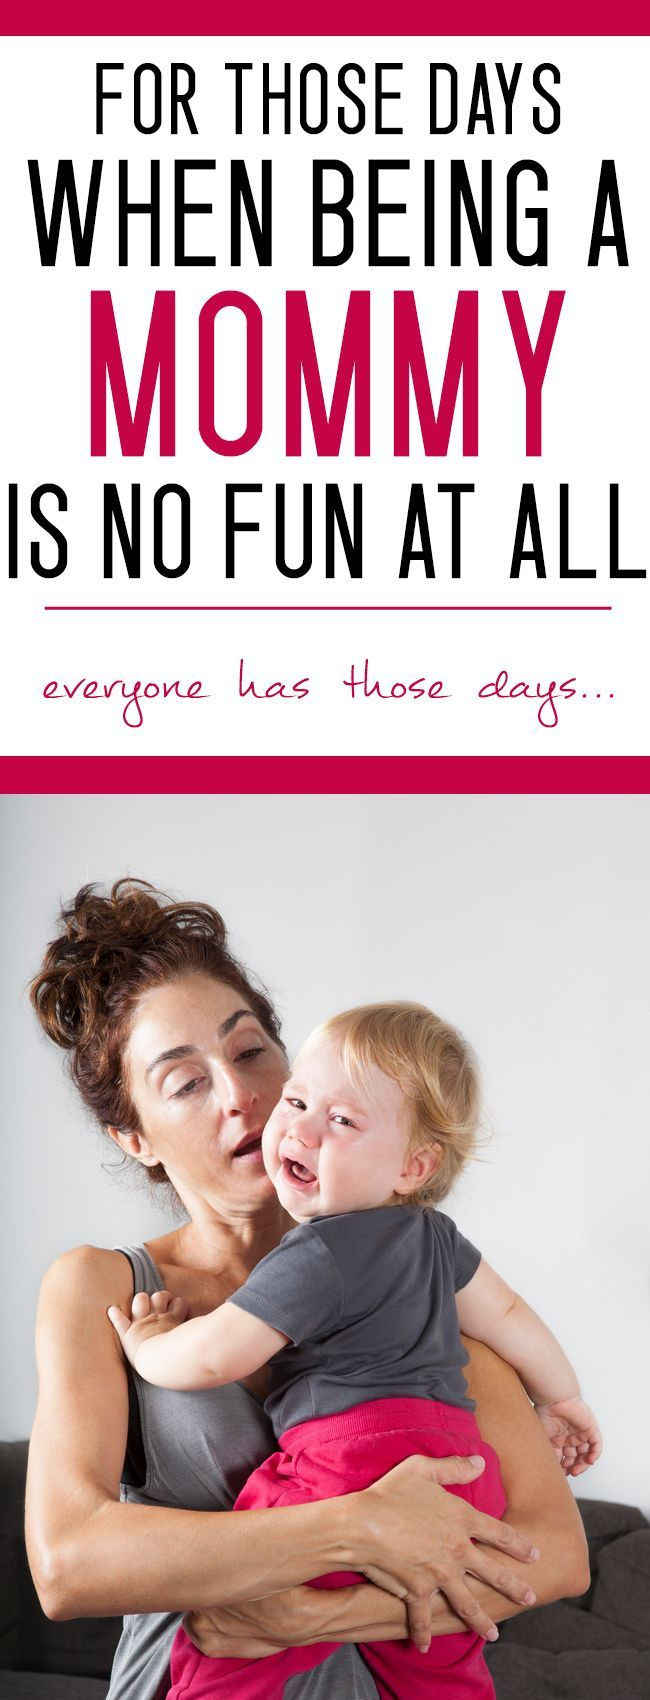 Baby won't sleep? Kids yelling? You need this reminder momma! GREAT parenting encouragement